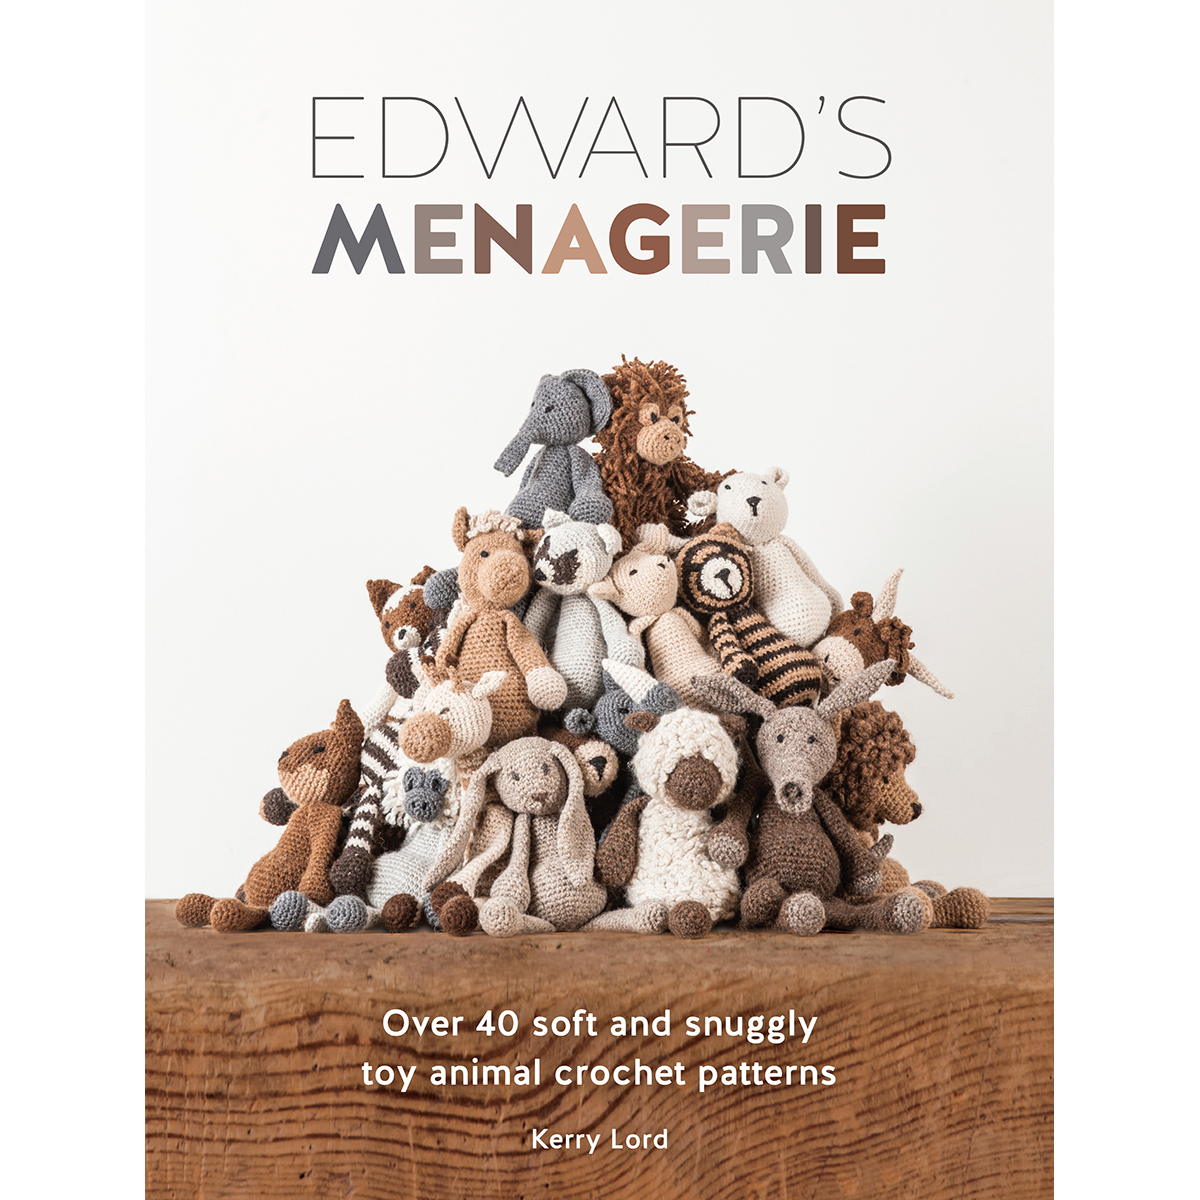 Edwards Menagerie by Kerry Lord